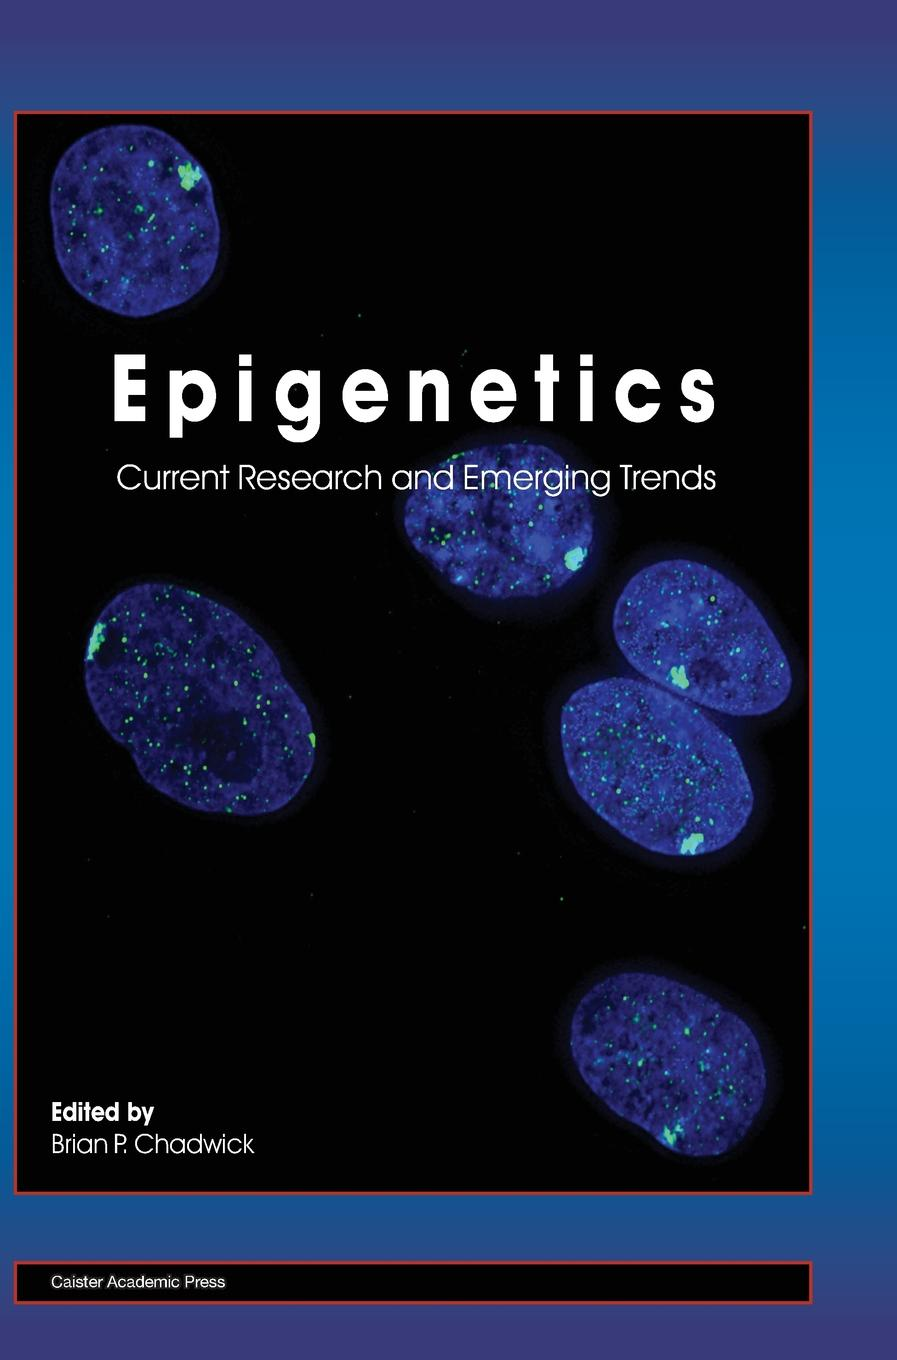 Epigenetics: Current Research and Emerging Trends